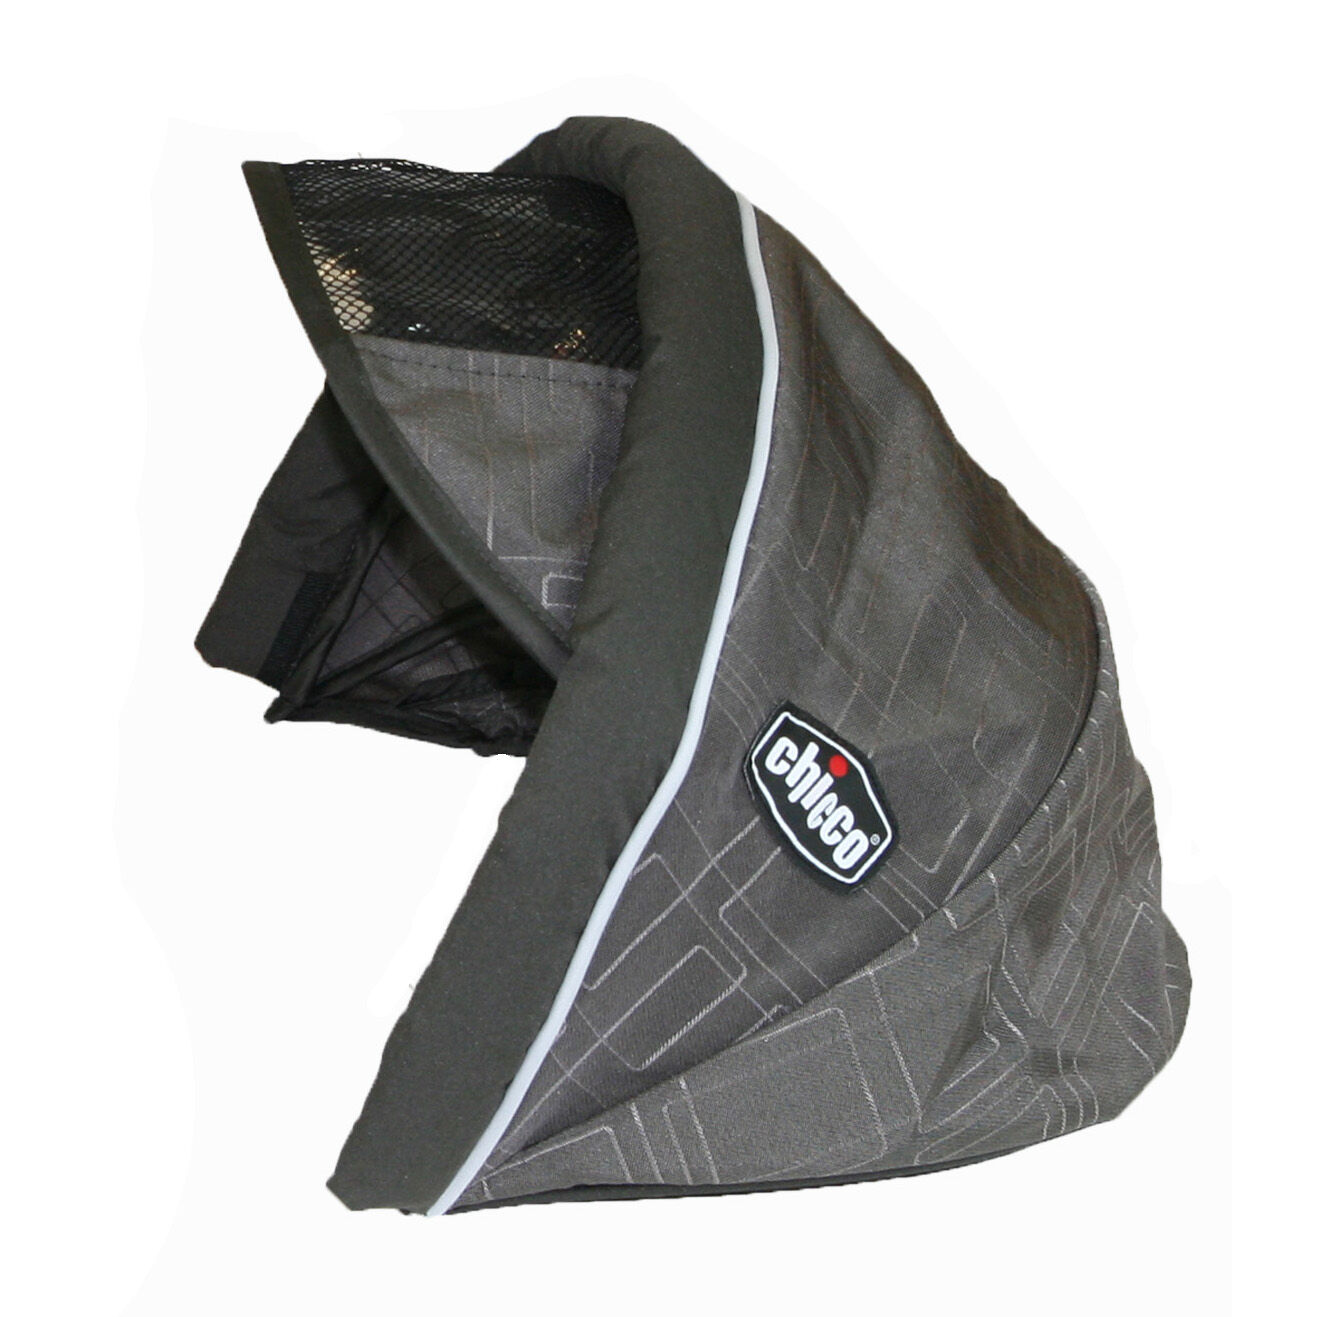 ... Replacement canopy for the Chicco KeyFit 30 Infant Car Seat ...  sc 1 st  Chicco & Keyfit 30 Seat Cover Canopy and Pads